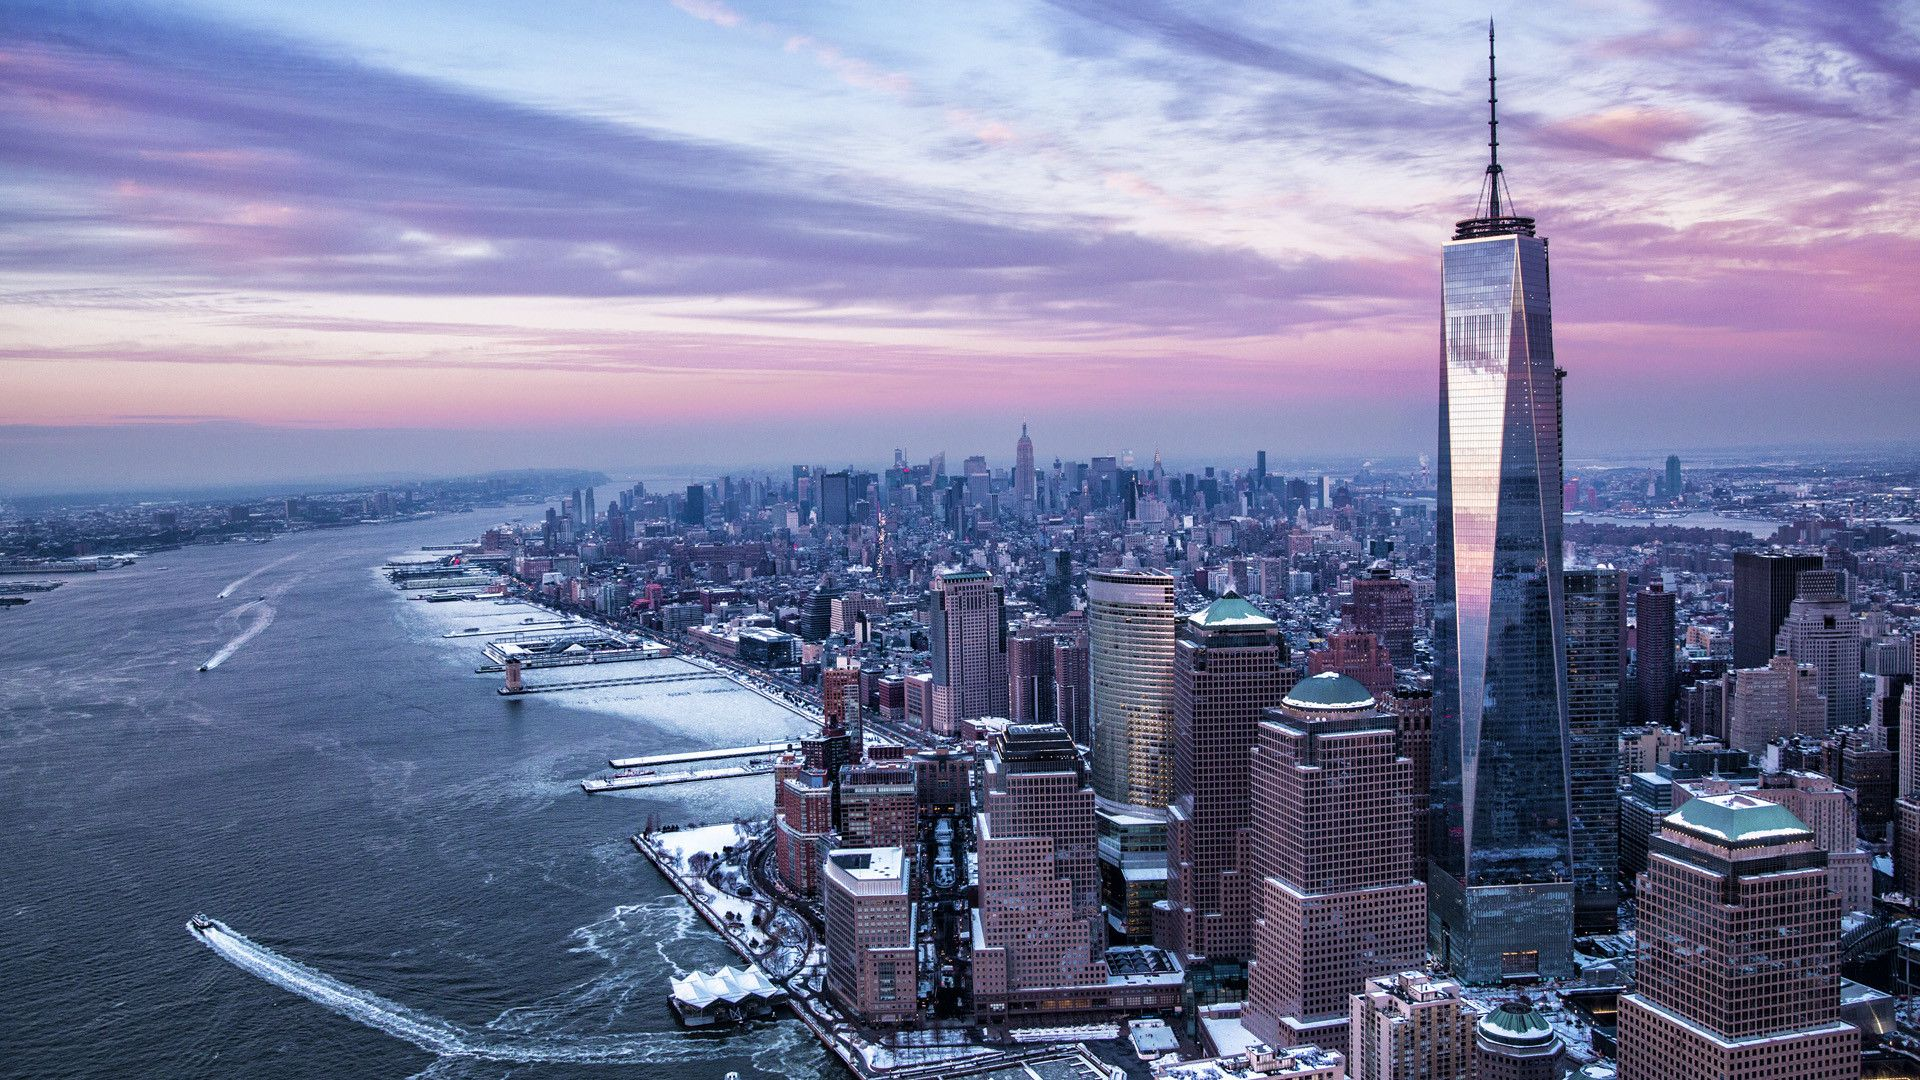 New York Hd Wallpapers Top Free New York Hd Backgrounds Wallpaperaccess